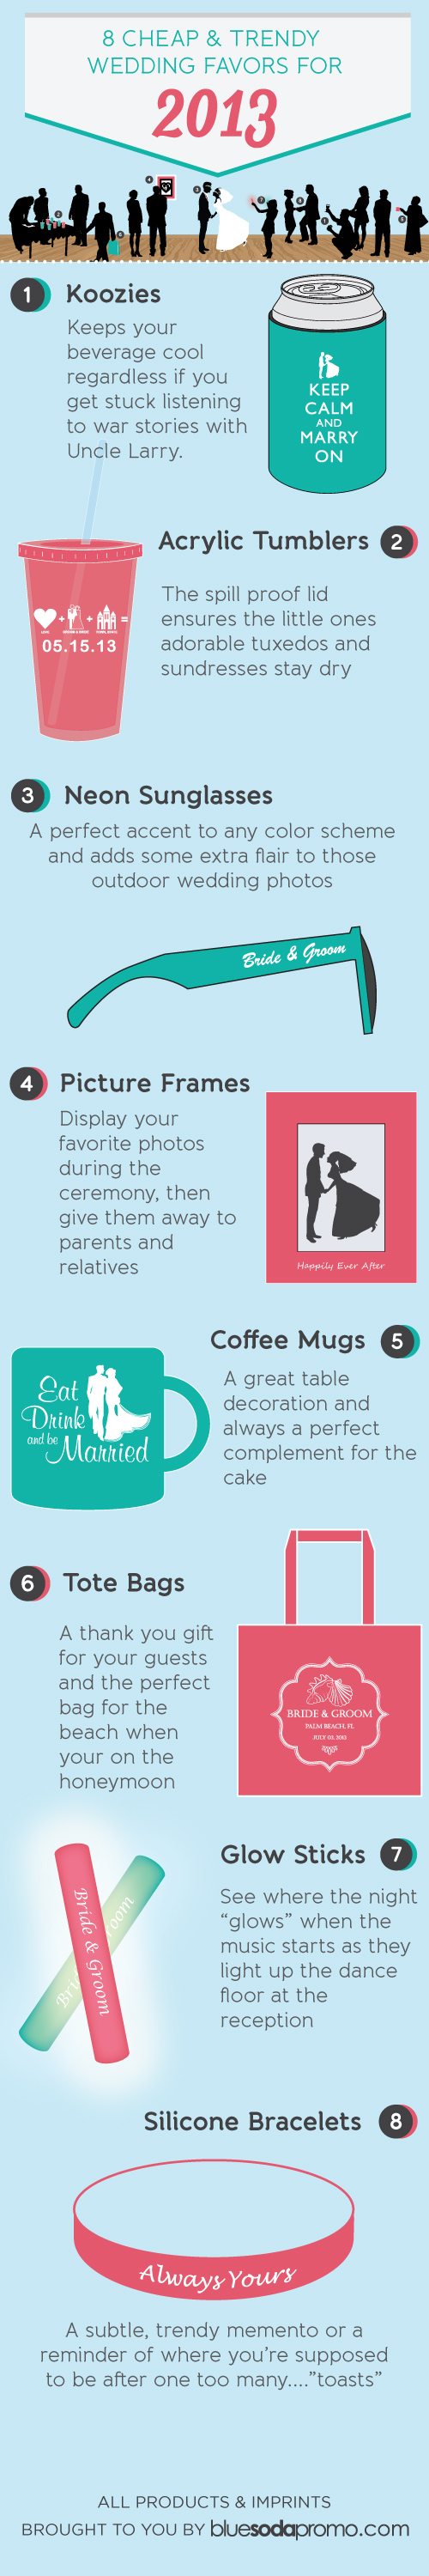 best wedding favors infographic